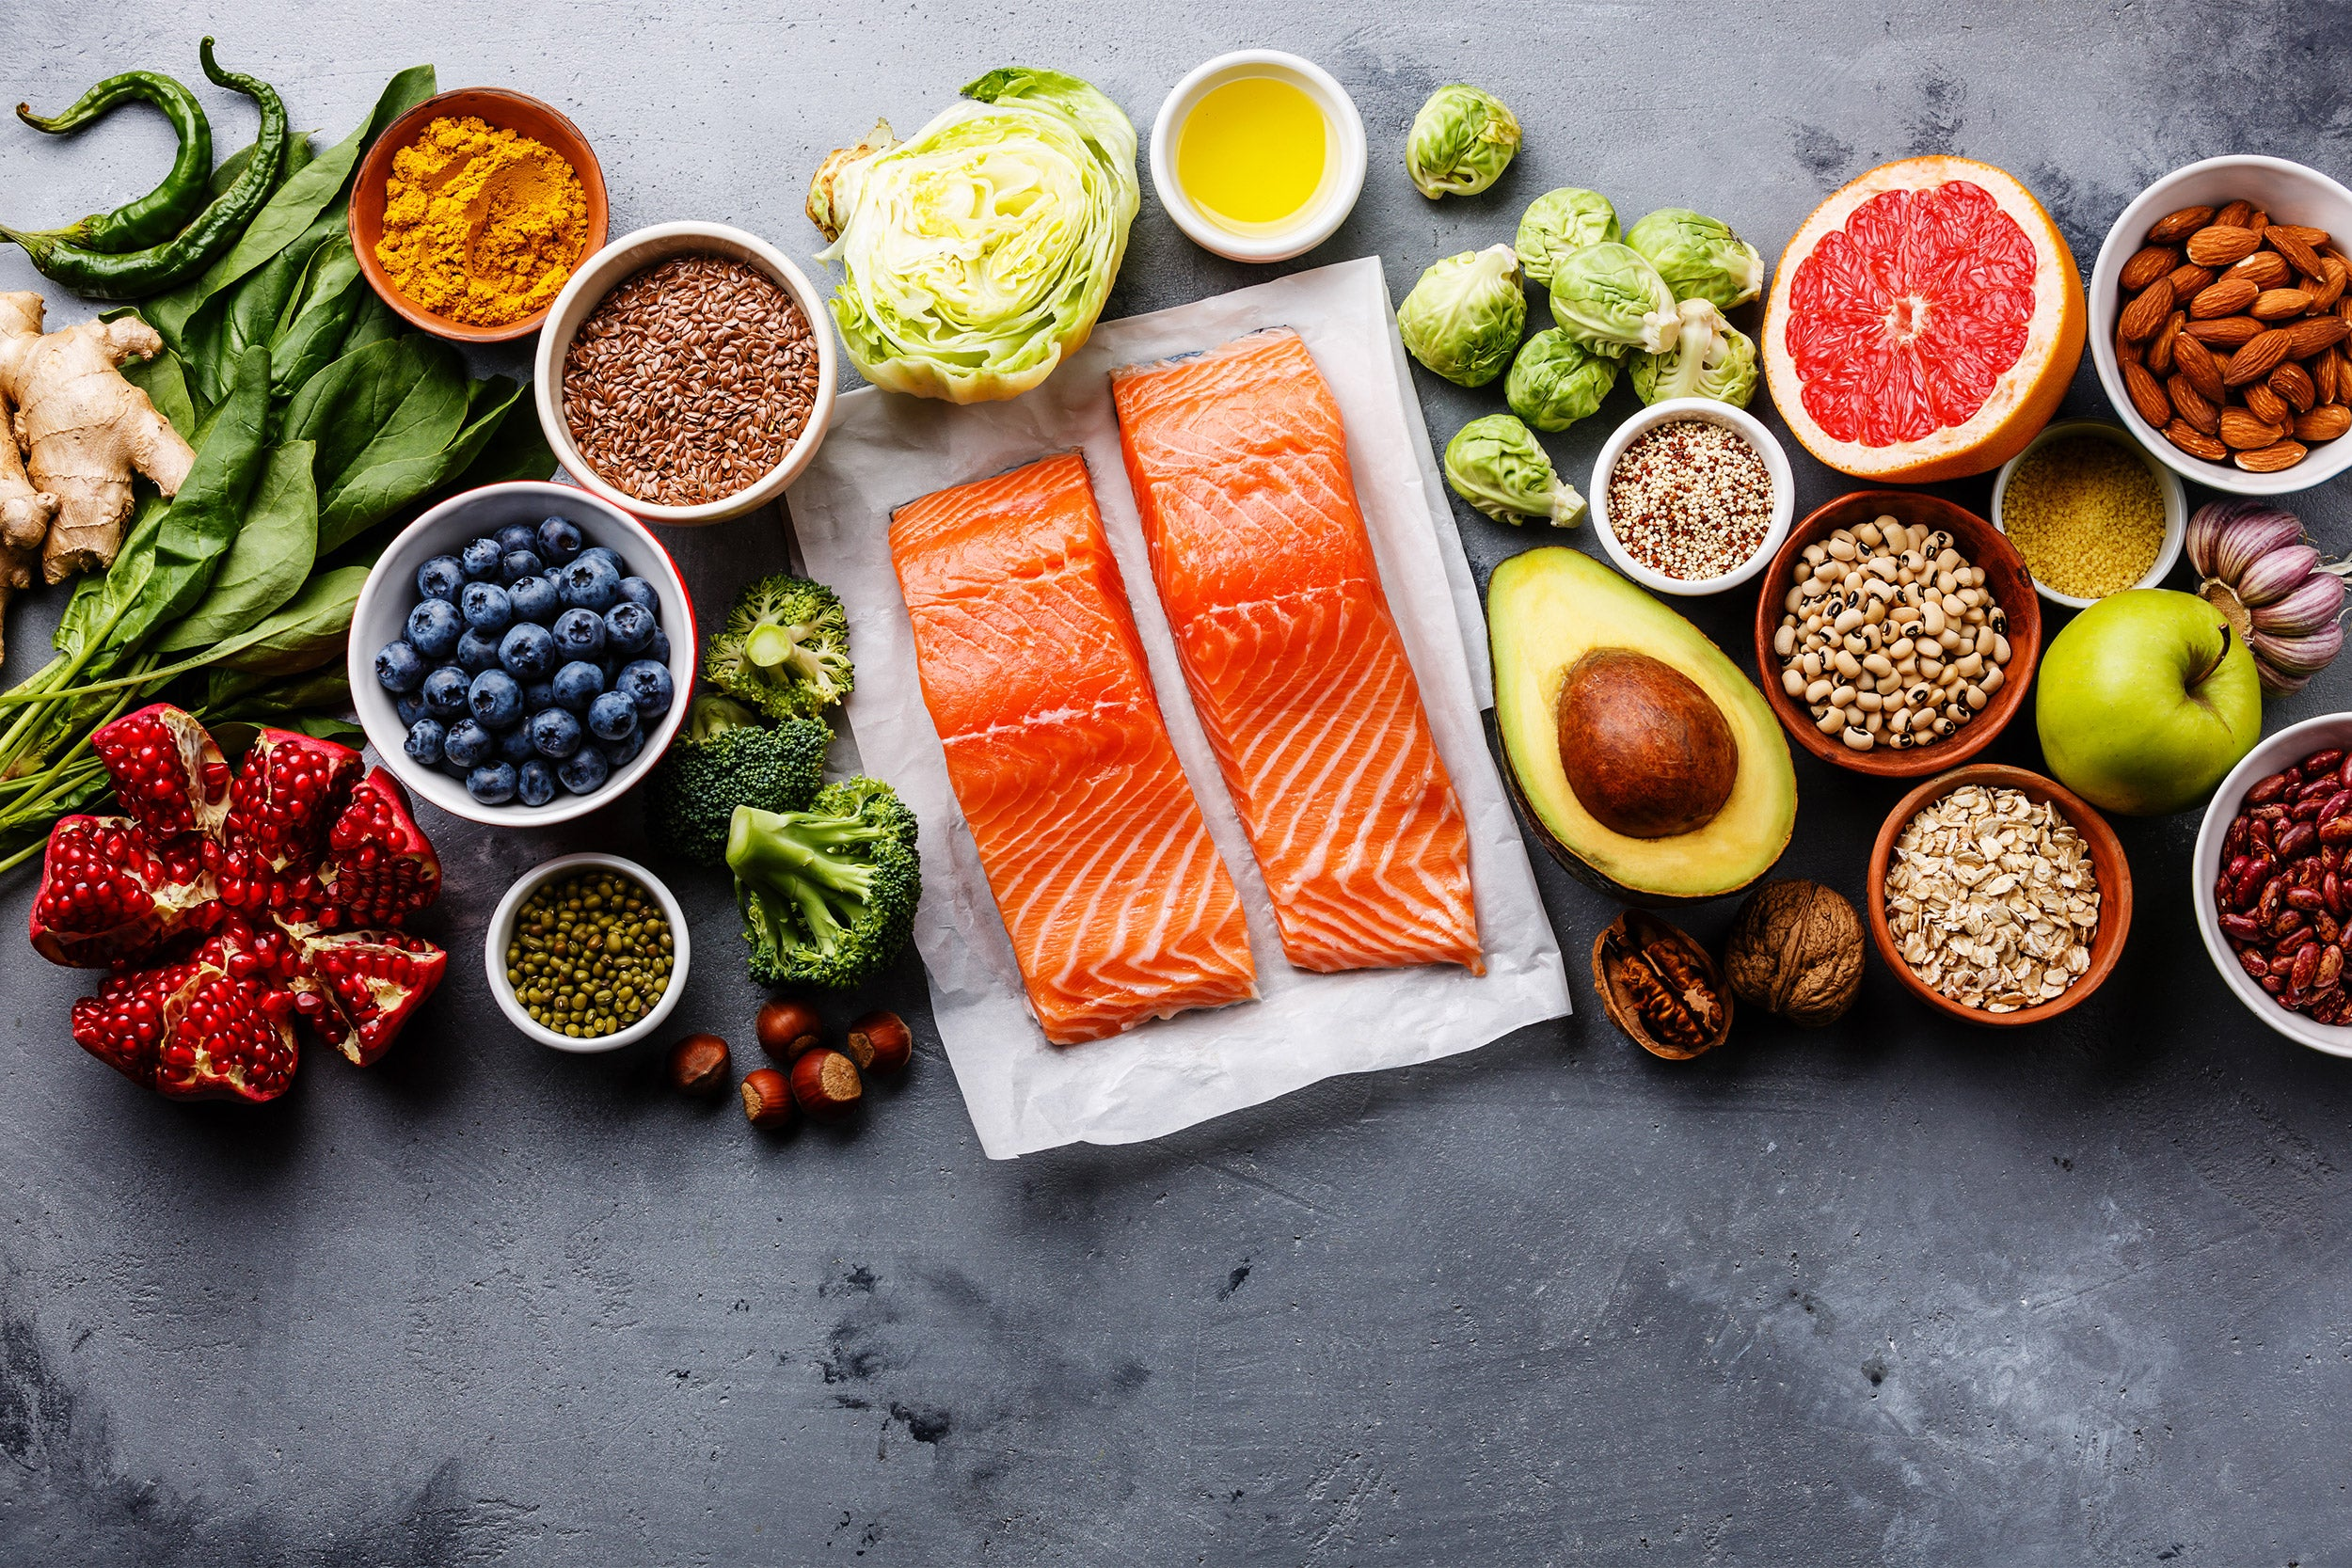 Healthy food clean eating selection: fish, fruit, vegetable, seeds, superfood, cereals, leaf vegetable